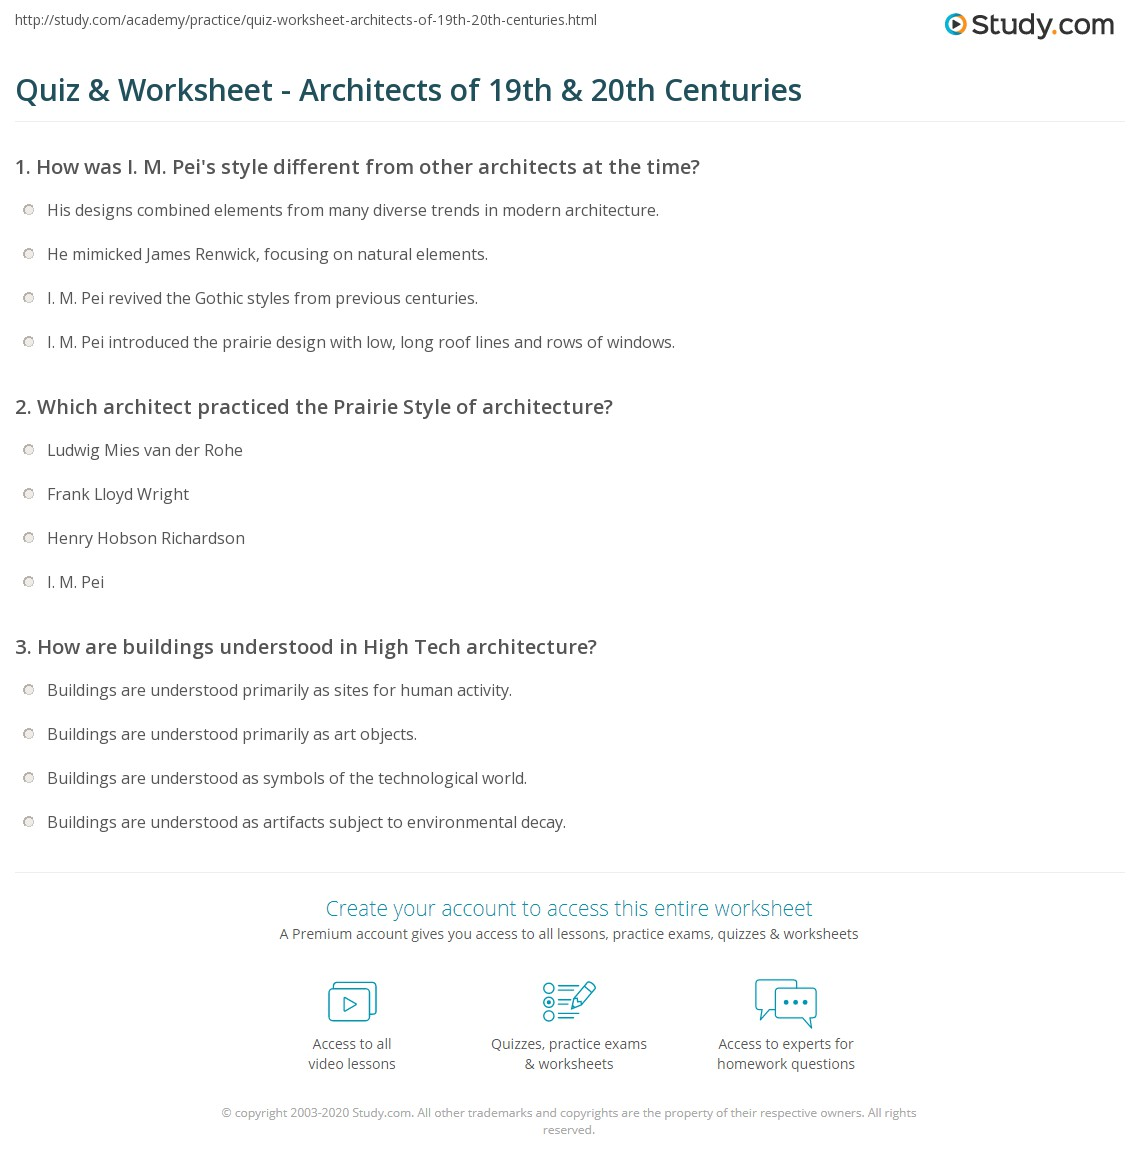 Quiz & Worksheet - Architects of 19th & 20th Centuries | Study.com